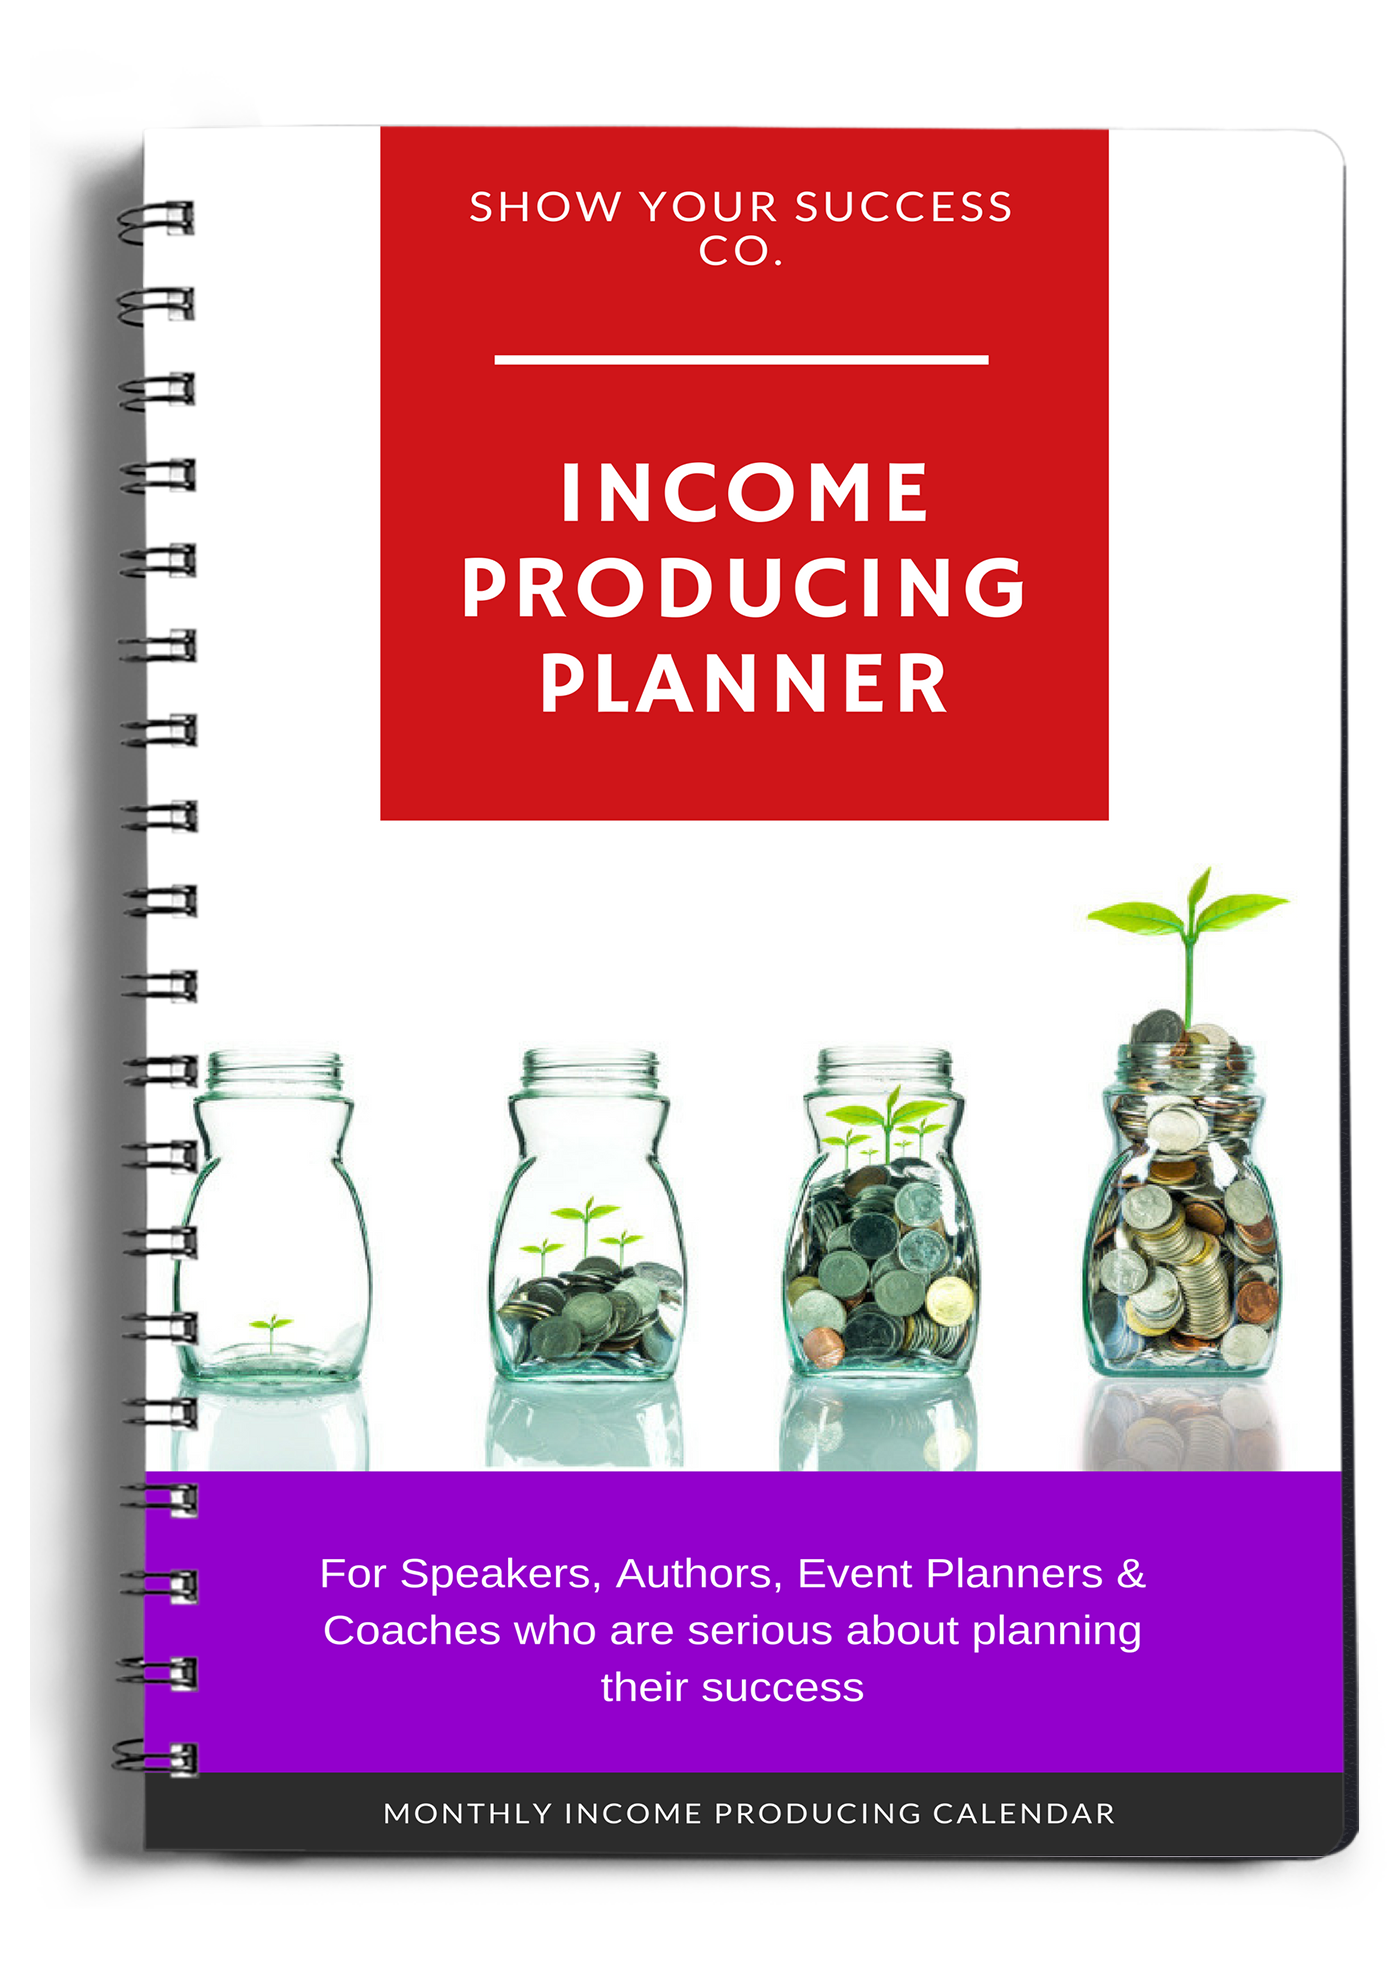 Income Producing Planner 00002